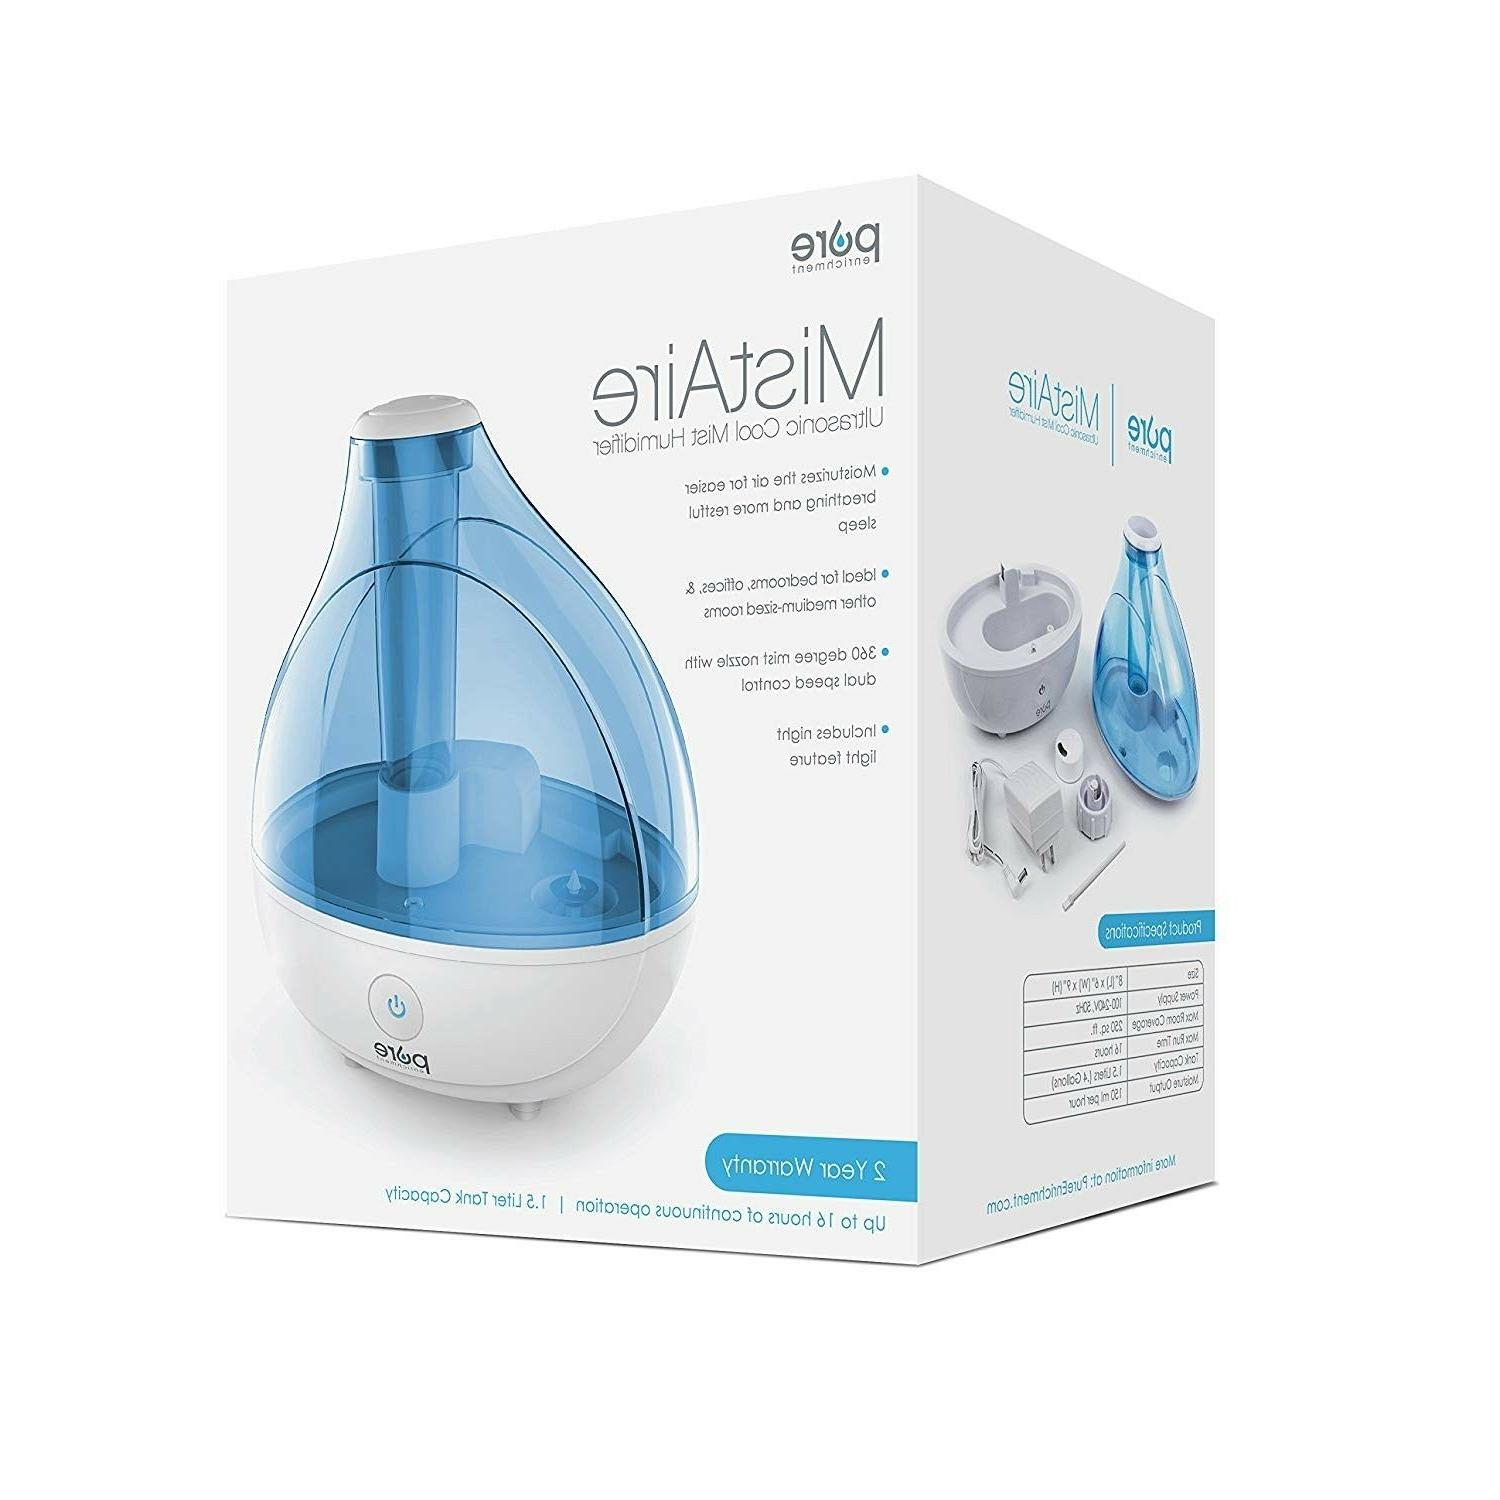 Cool Humidifier-Free 3 day shipping!